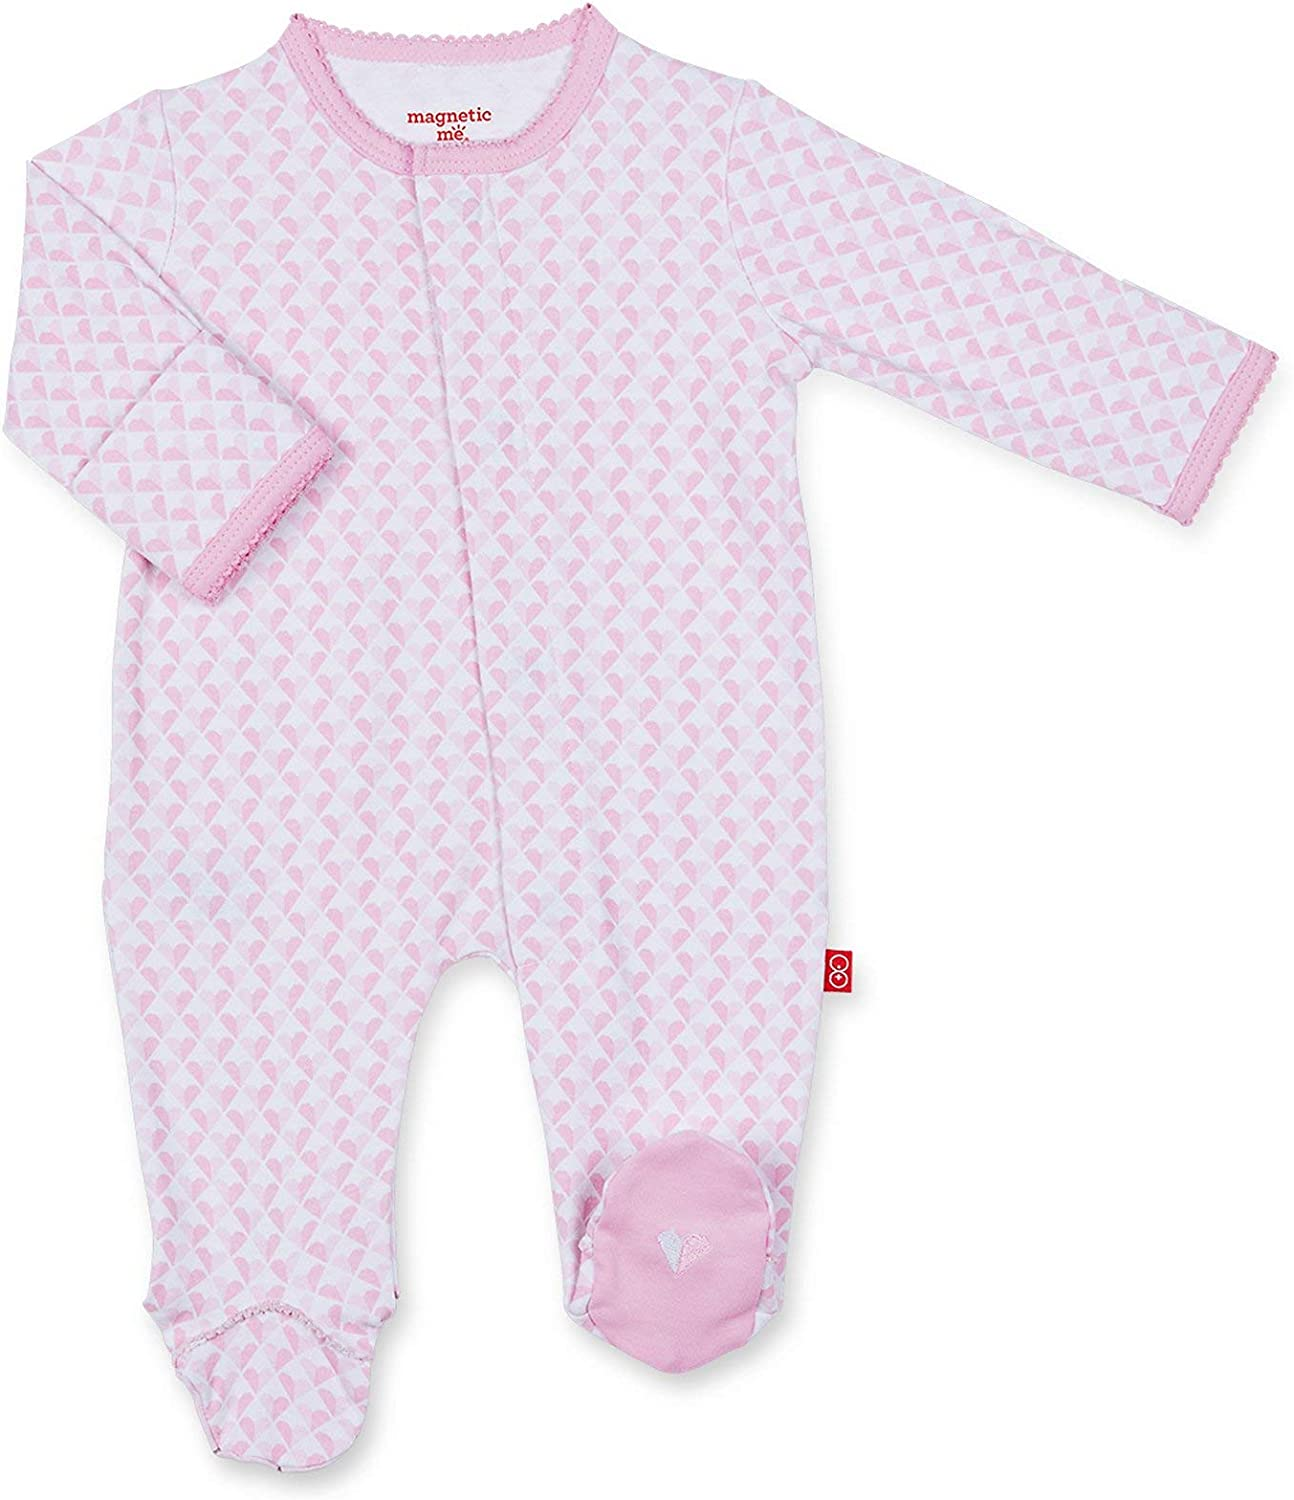 Magnificent Baby Magnetic Me Girls Footie